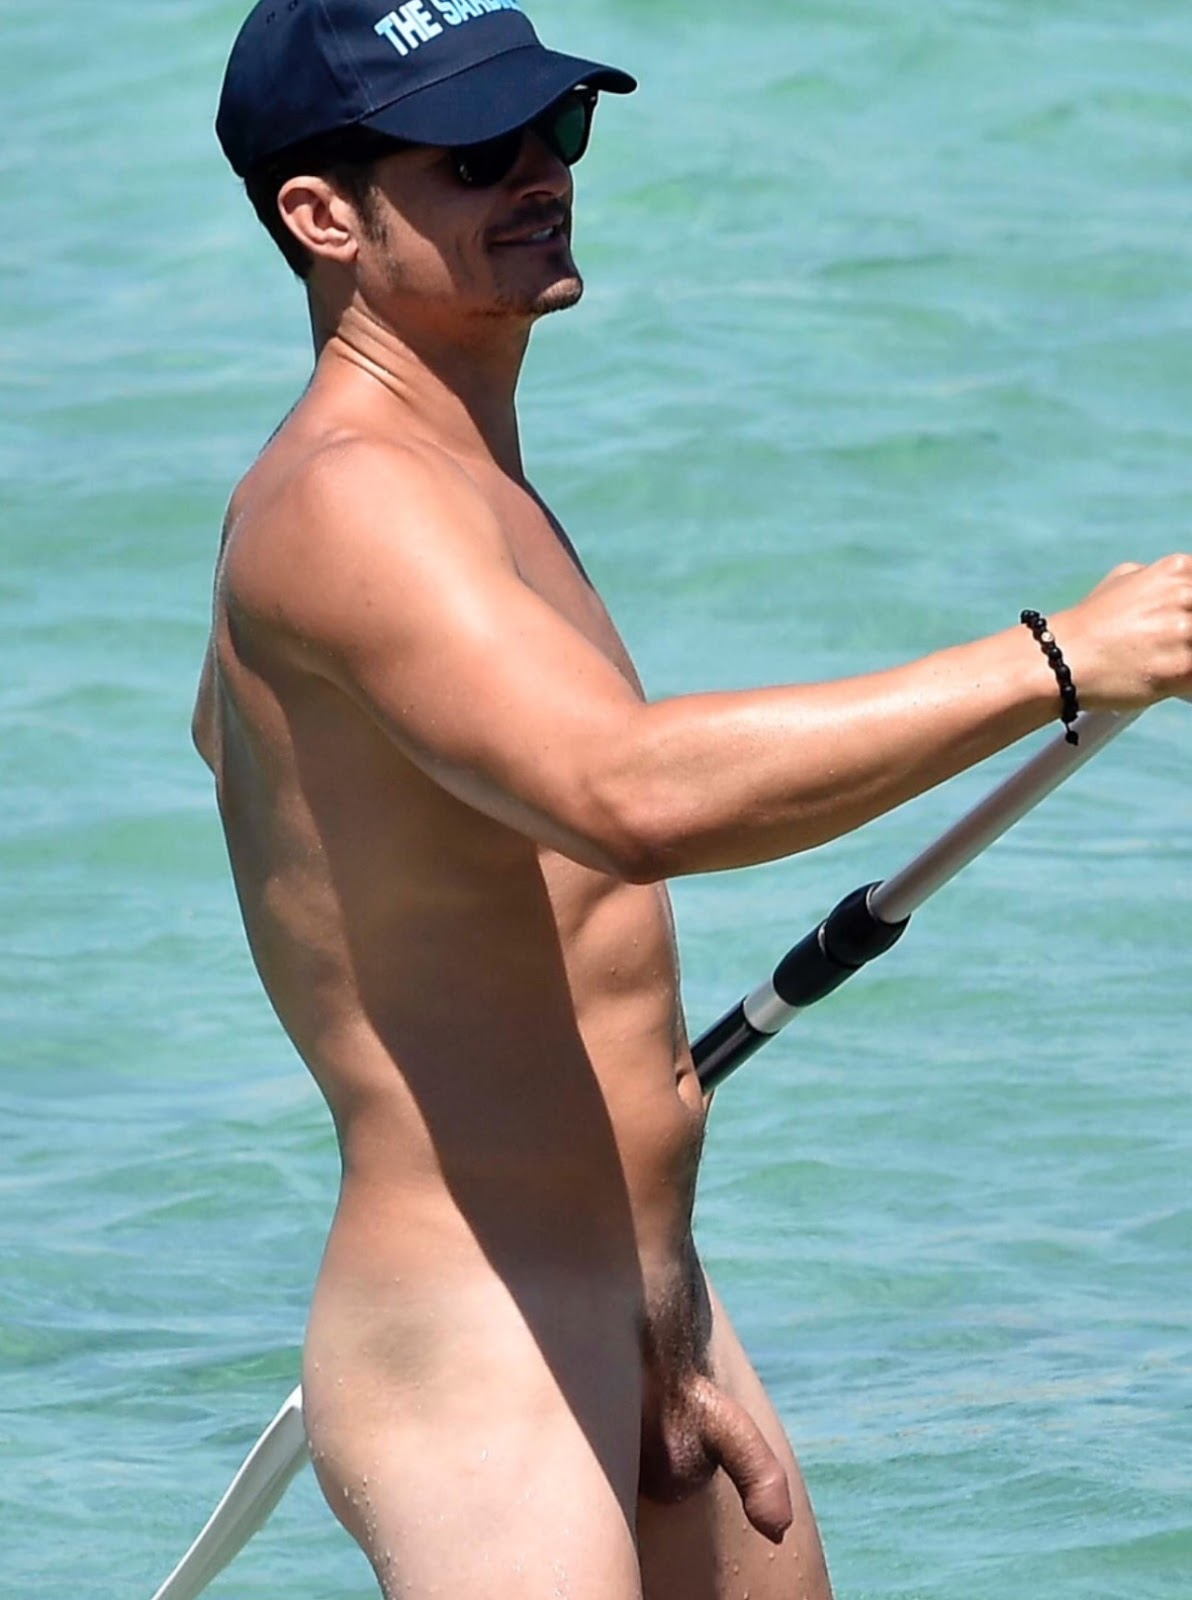 Orlando Bloom Shows Off His Hot Shirtless Bod See His Muscles